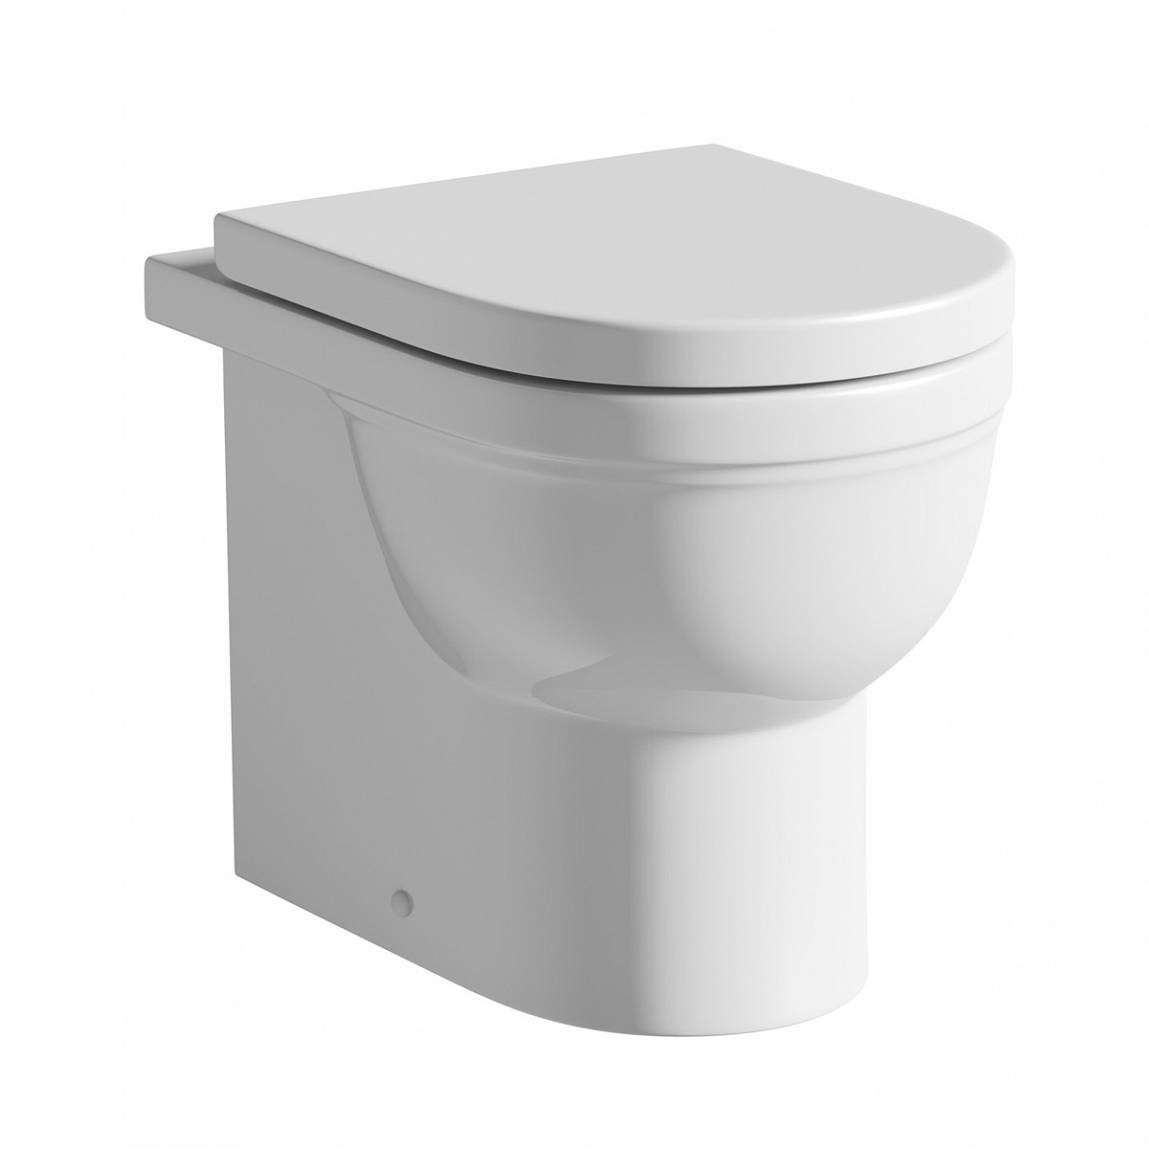 Image of Deco Back to Wall Toilet exc Seat Special Offer